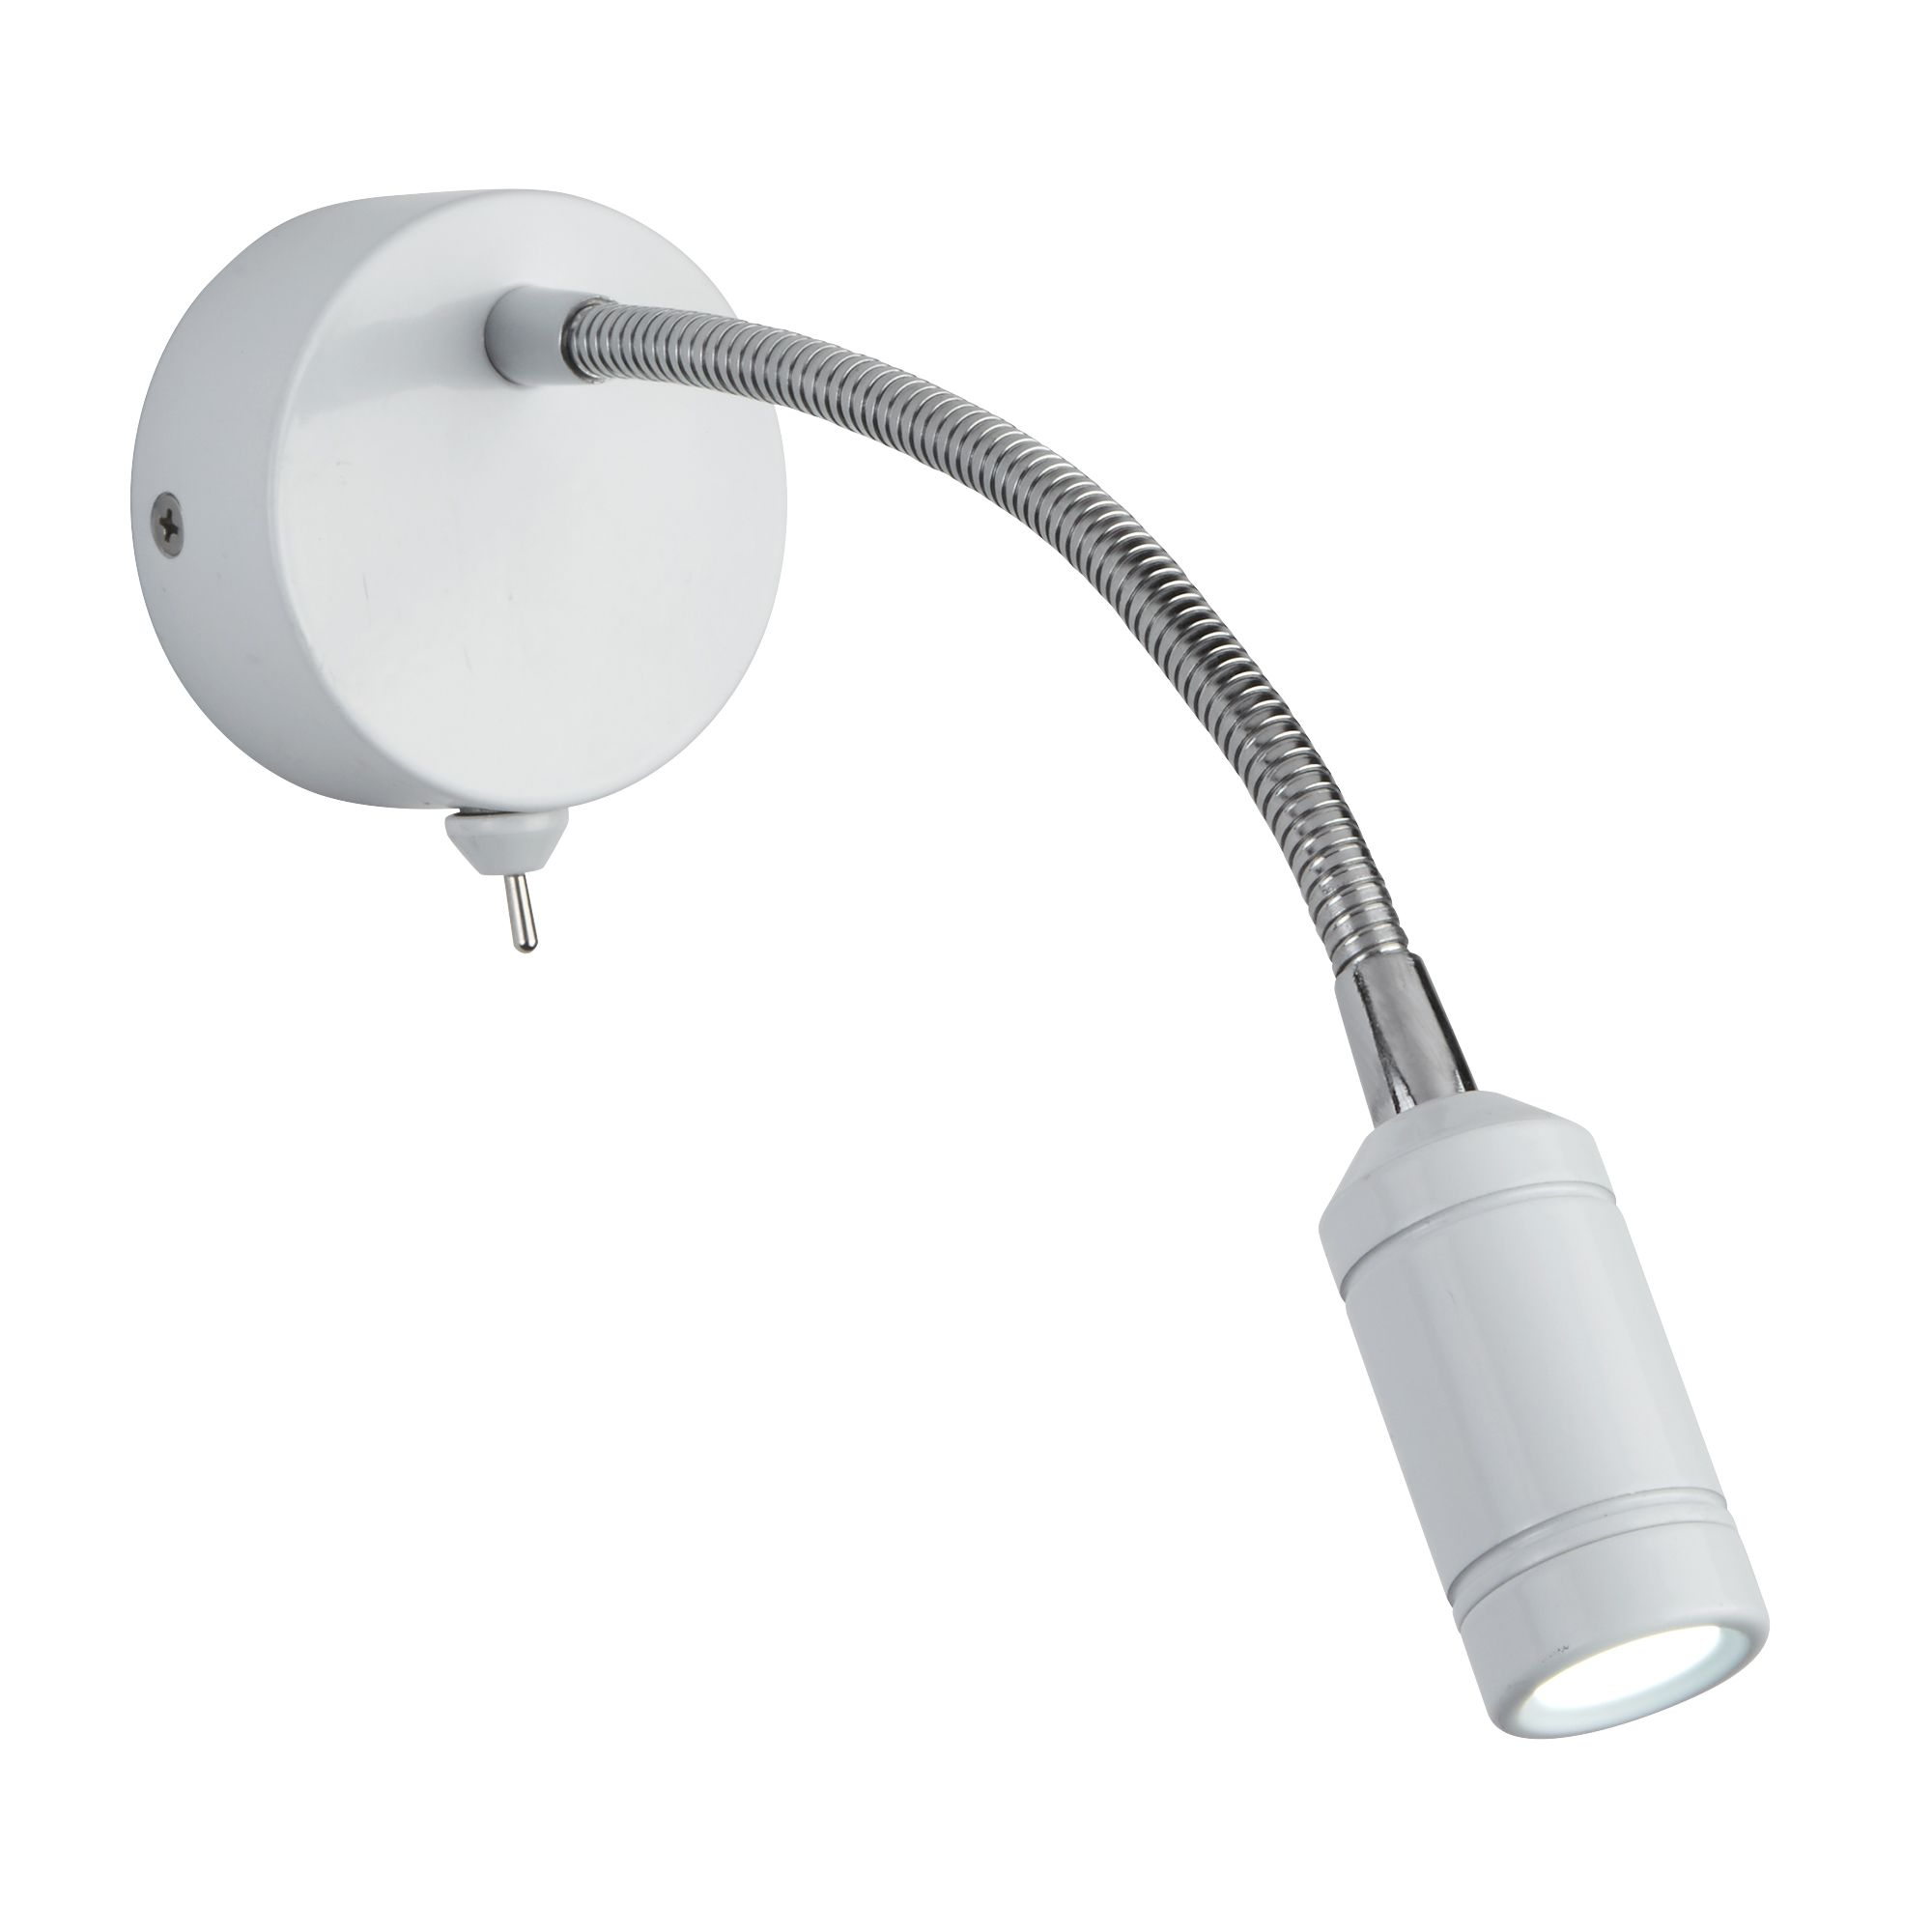 Led Wall Light - White Head & Body - Chrome Flexi Arm